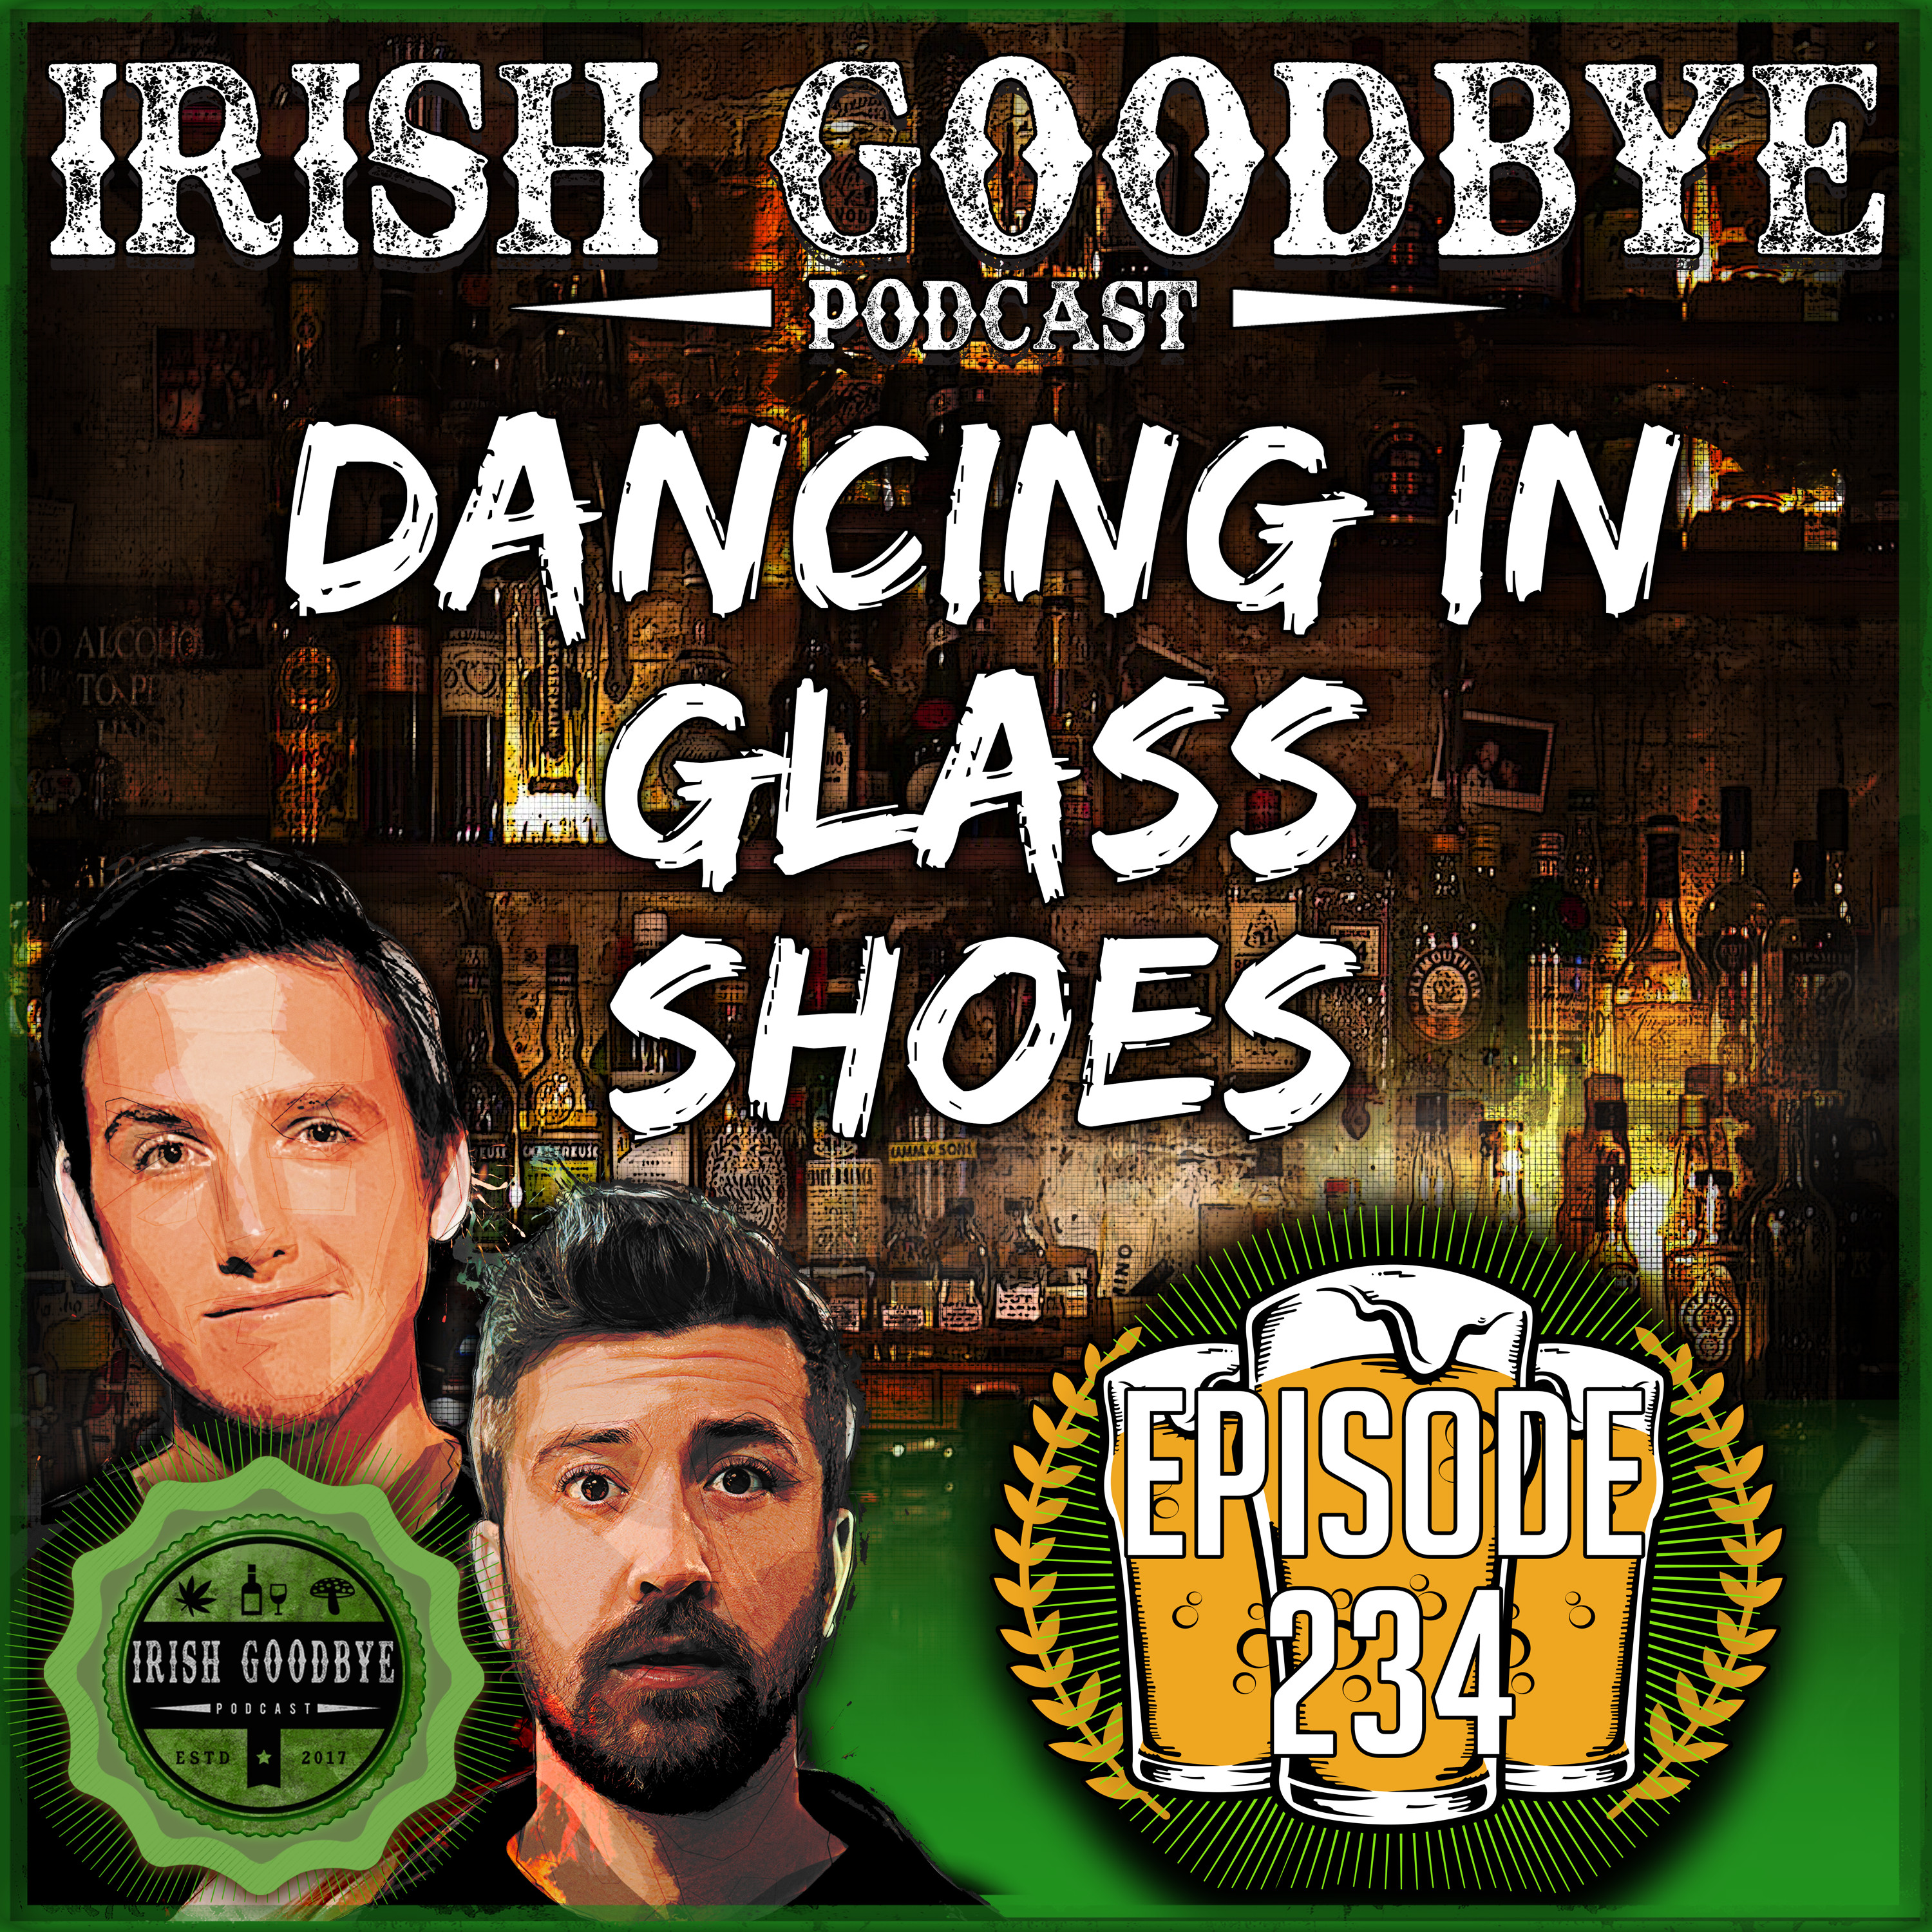 Episode #234 - Dancing in Glass Shoes